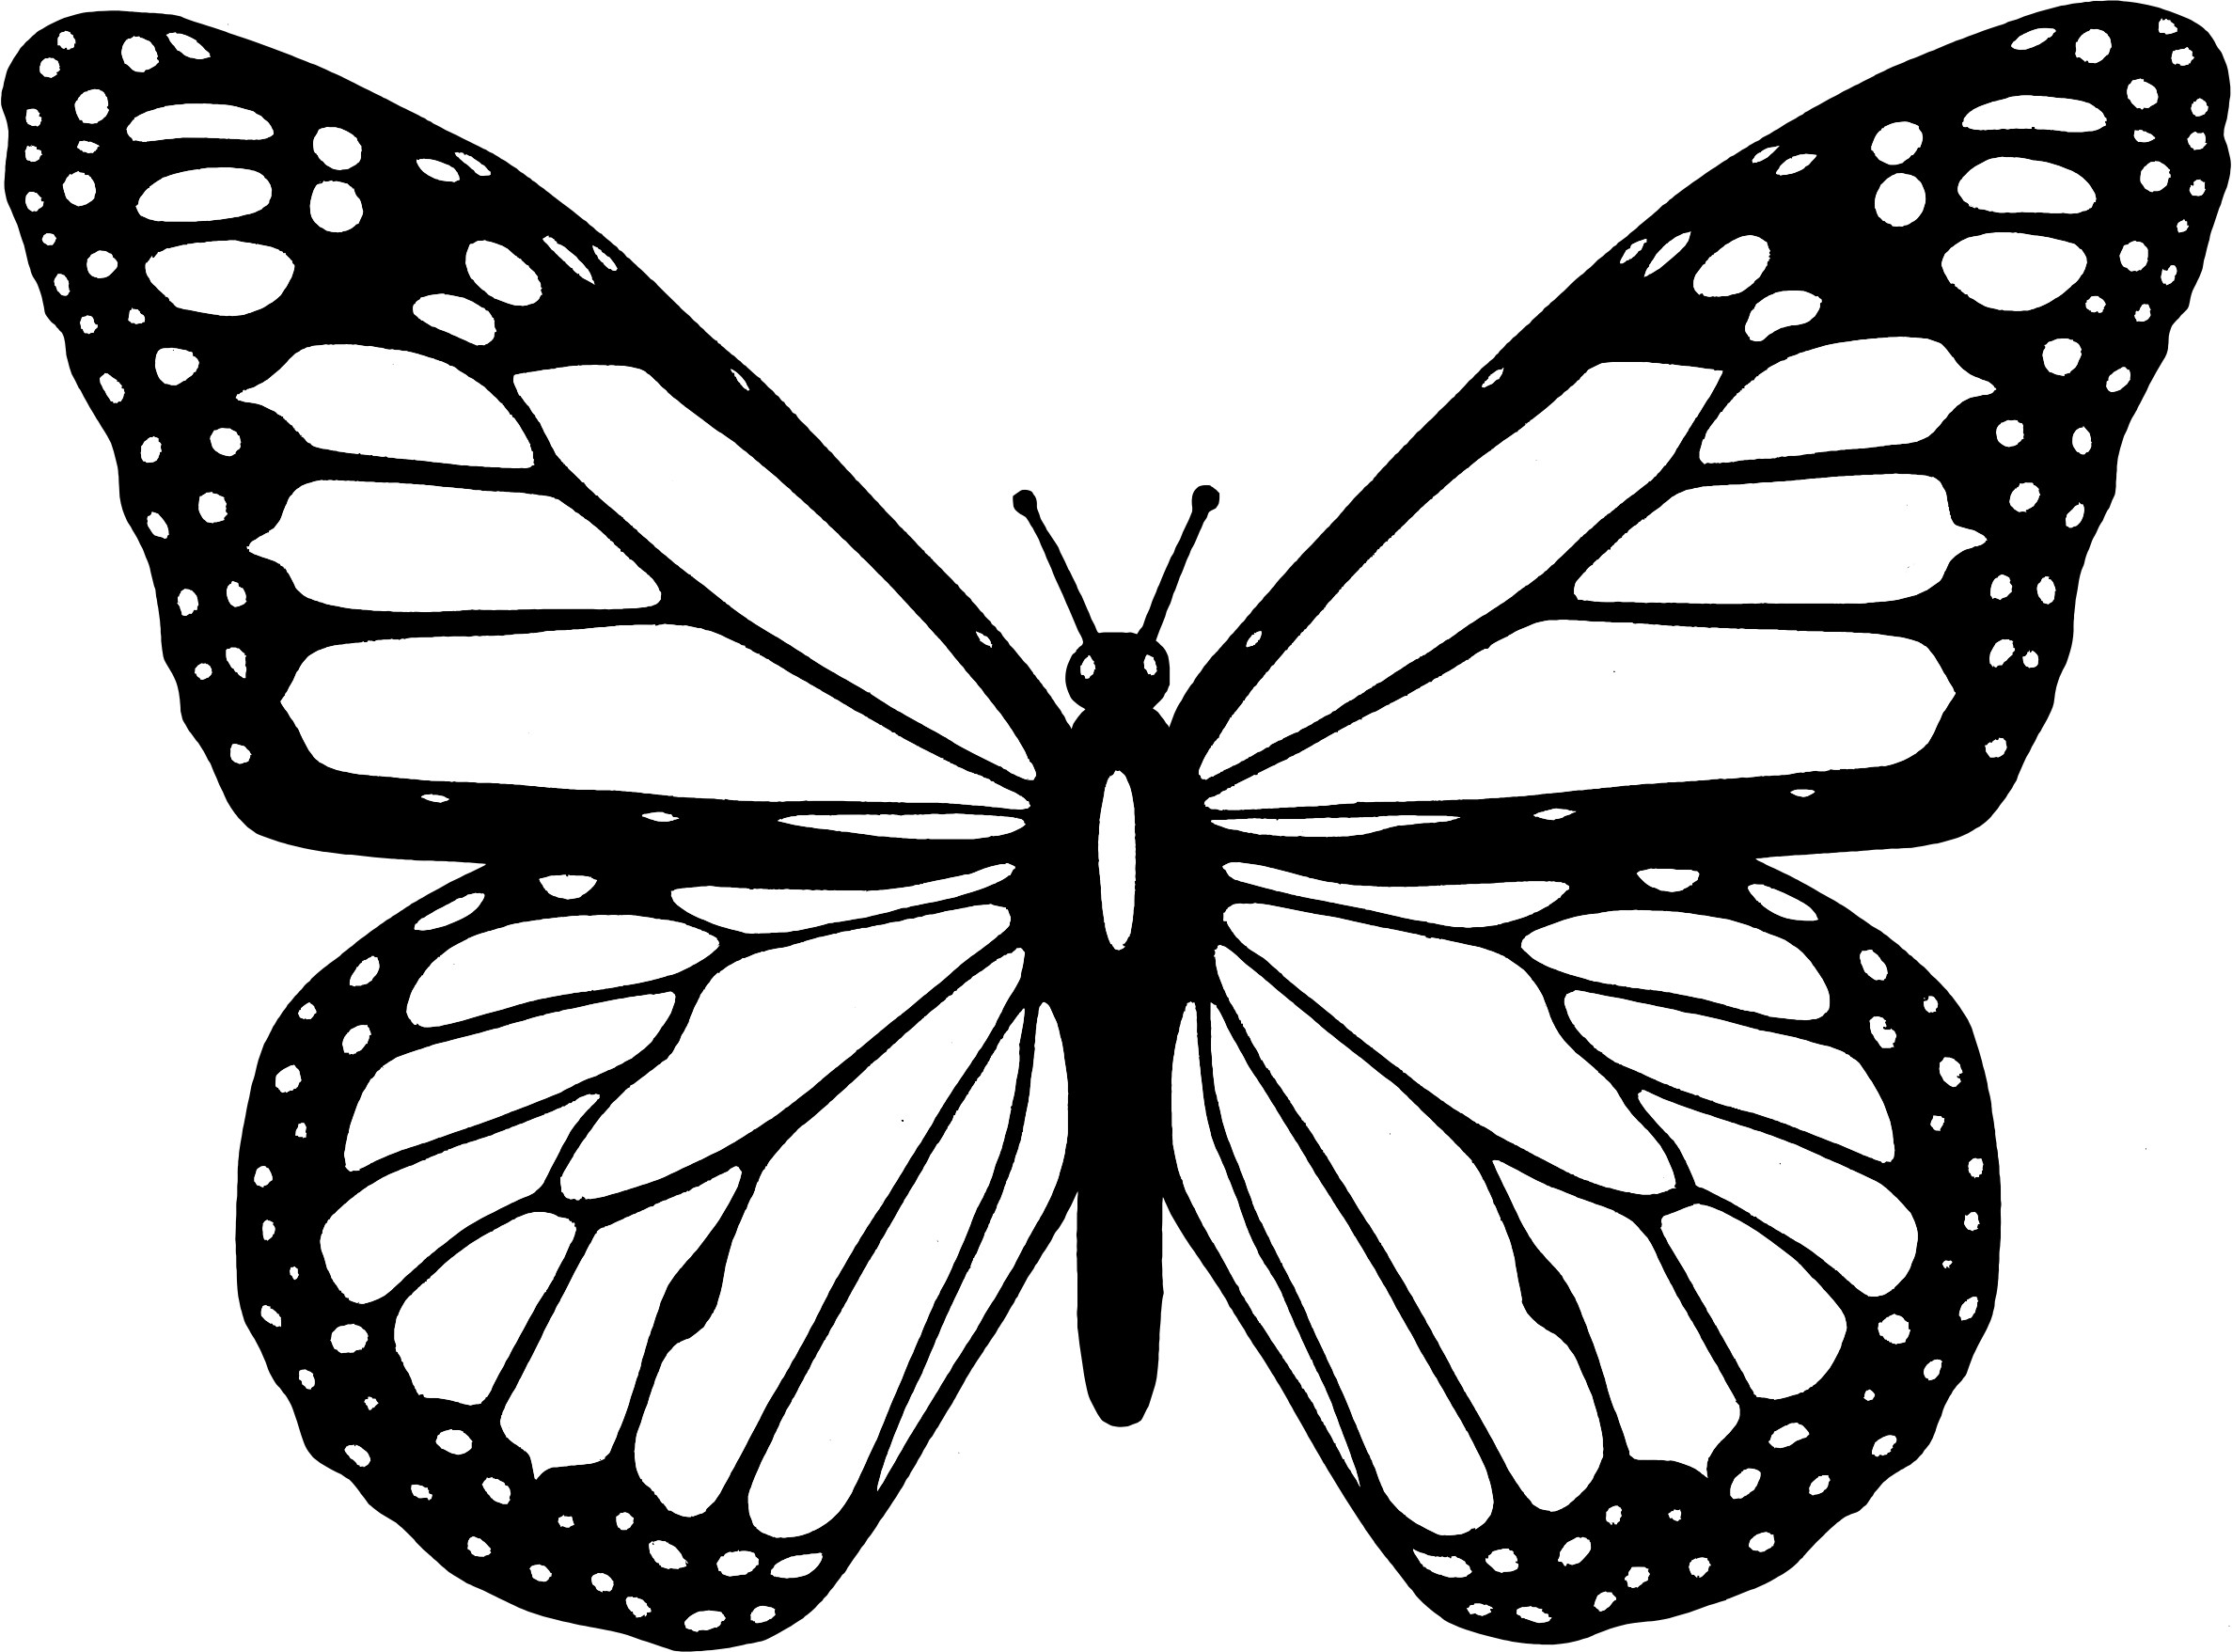 Monarch butterfly Coloring Pages - 49 Unique S Monarch butterfly Coloring Pages Printable